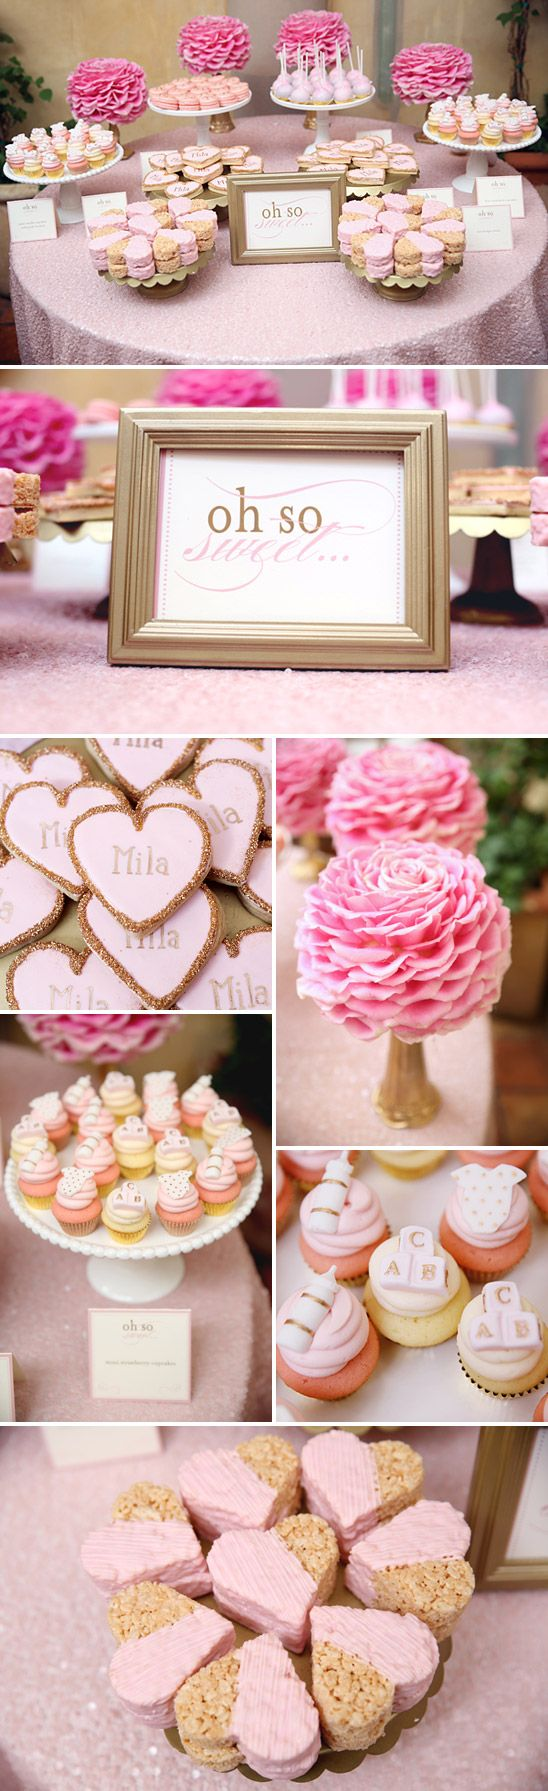 a feminine elegant baby shower in pink and gold baby shower